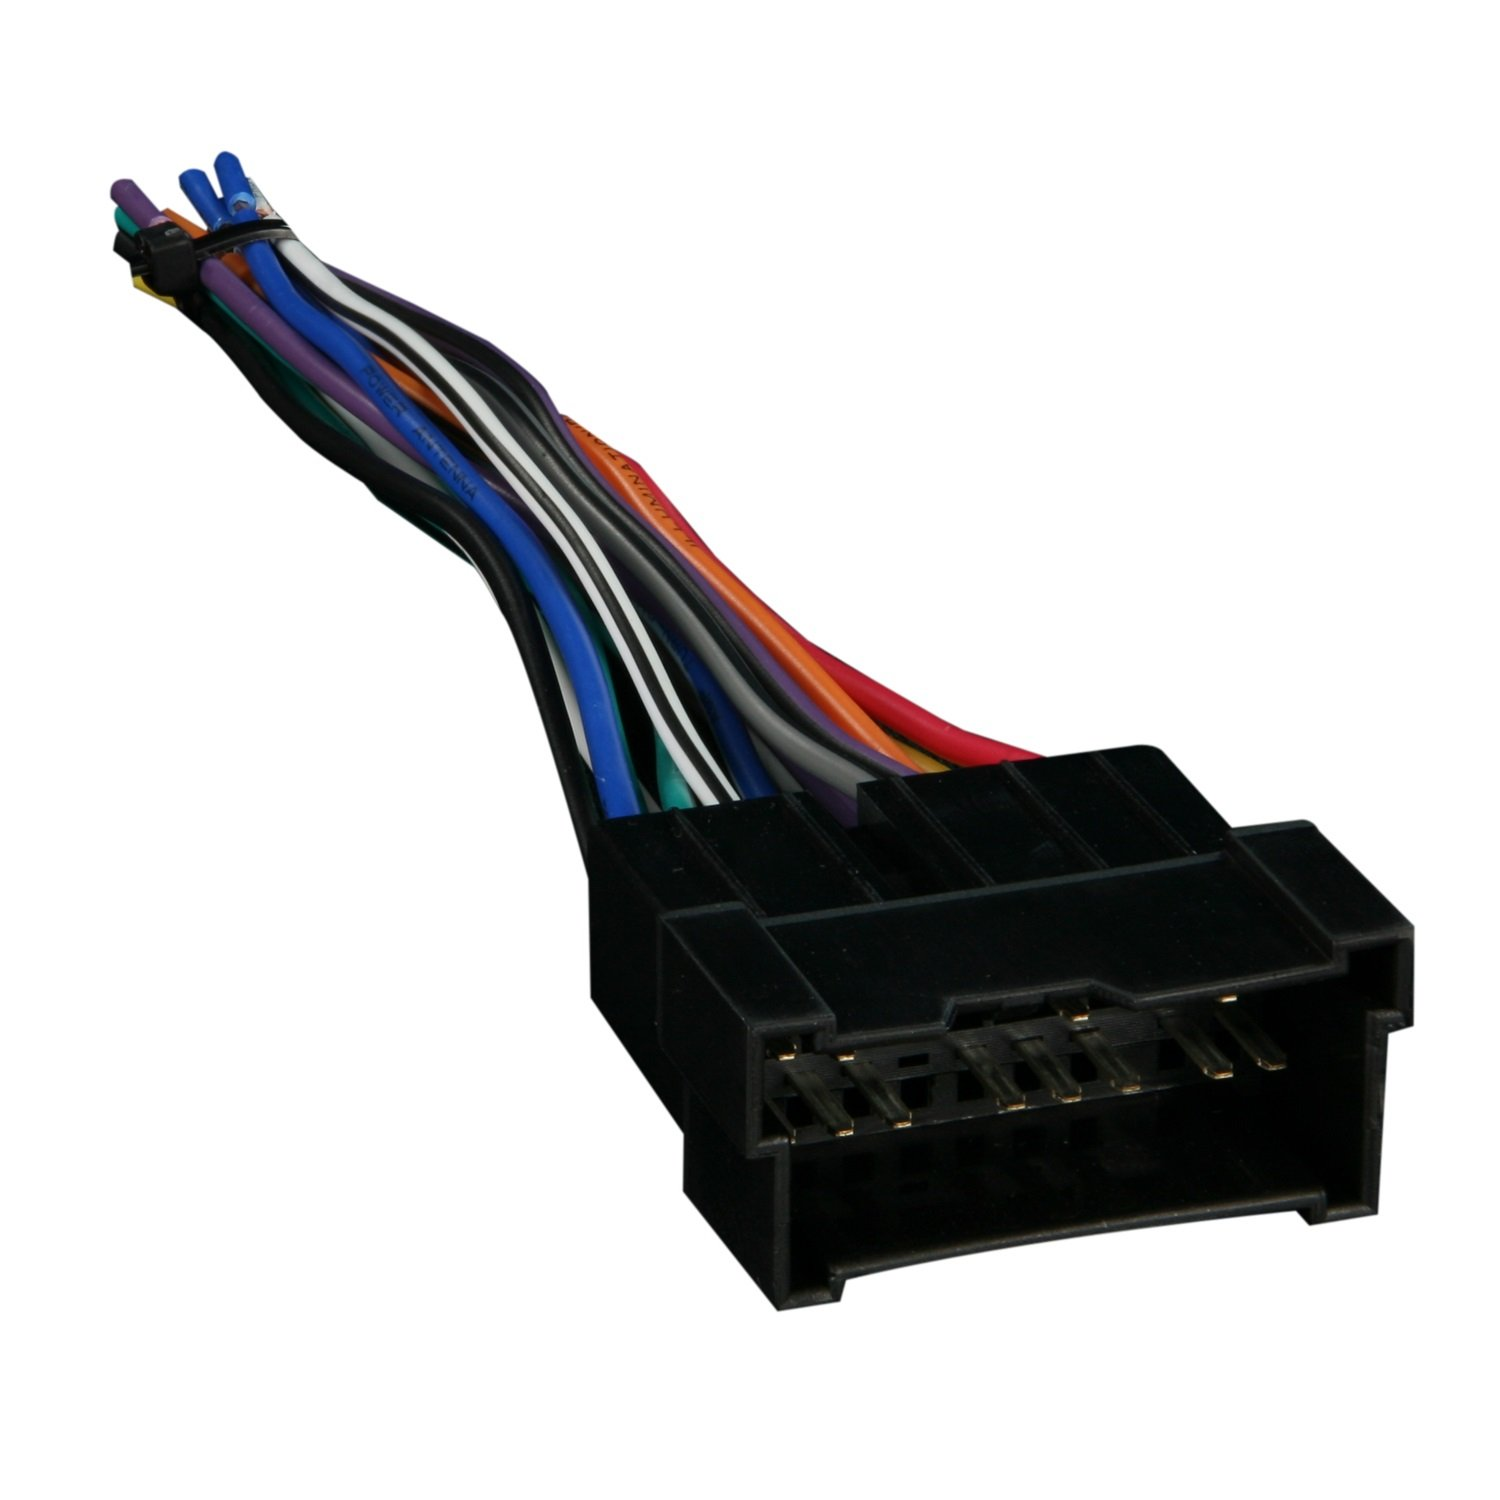 617yeBmOquL._SL1500_ amazon com metra 70 7301 radio wiring harness for hyundai kia 99 radio harness at alyssarenee.co